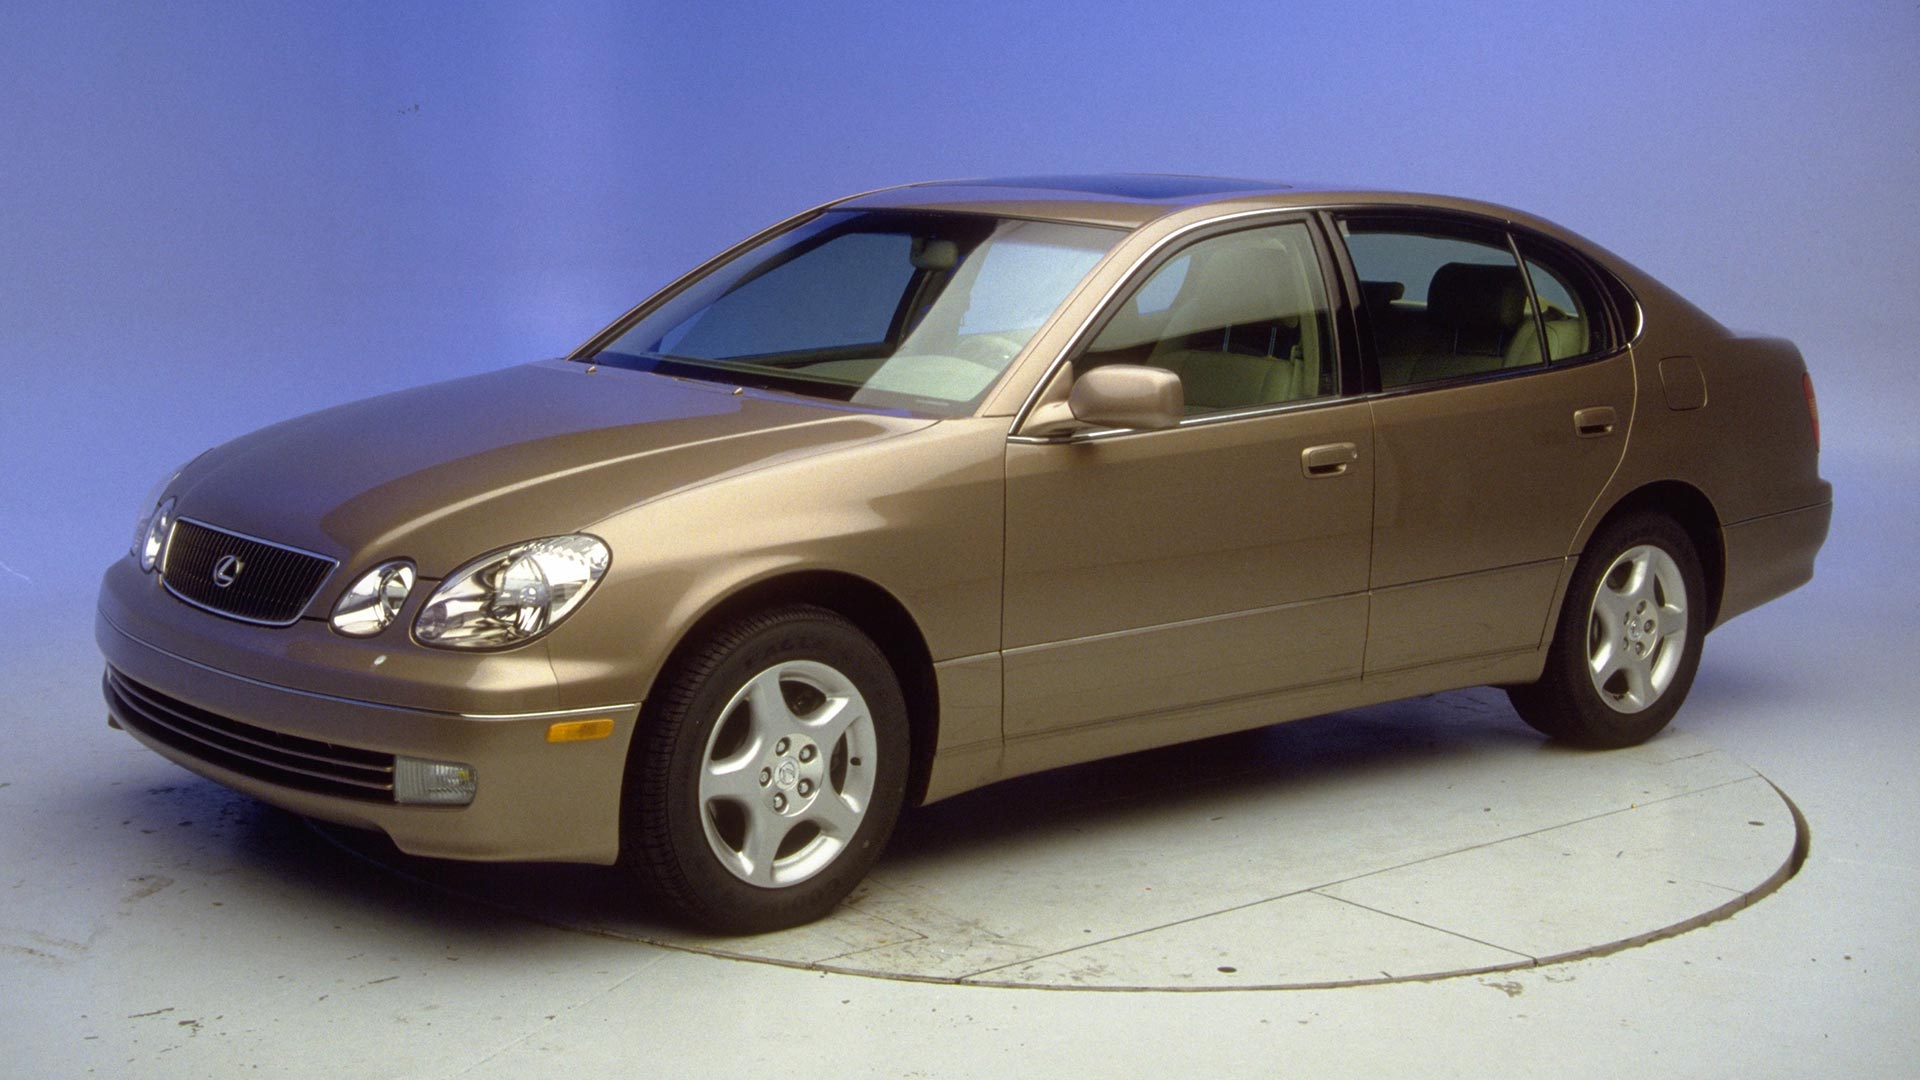 2000 Lexus GS 4-door sedan